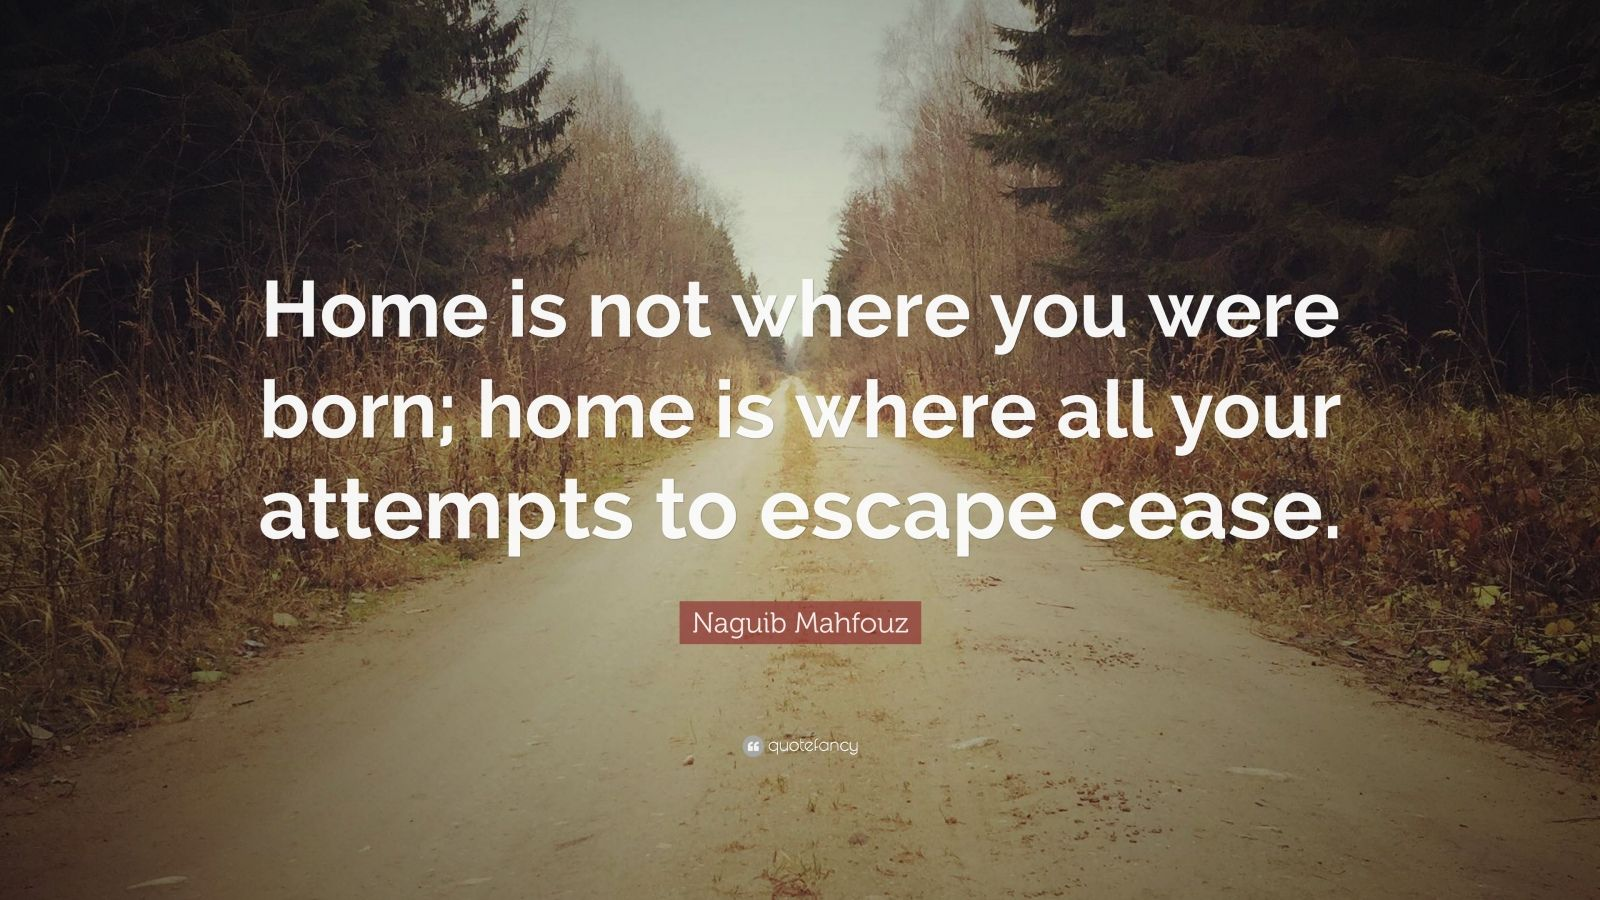 Dream Wallpaper Quotes Naguib Mahfouz Quote Home Is Not Where You Were Born